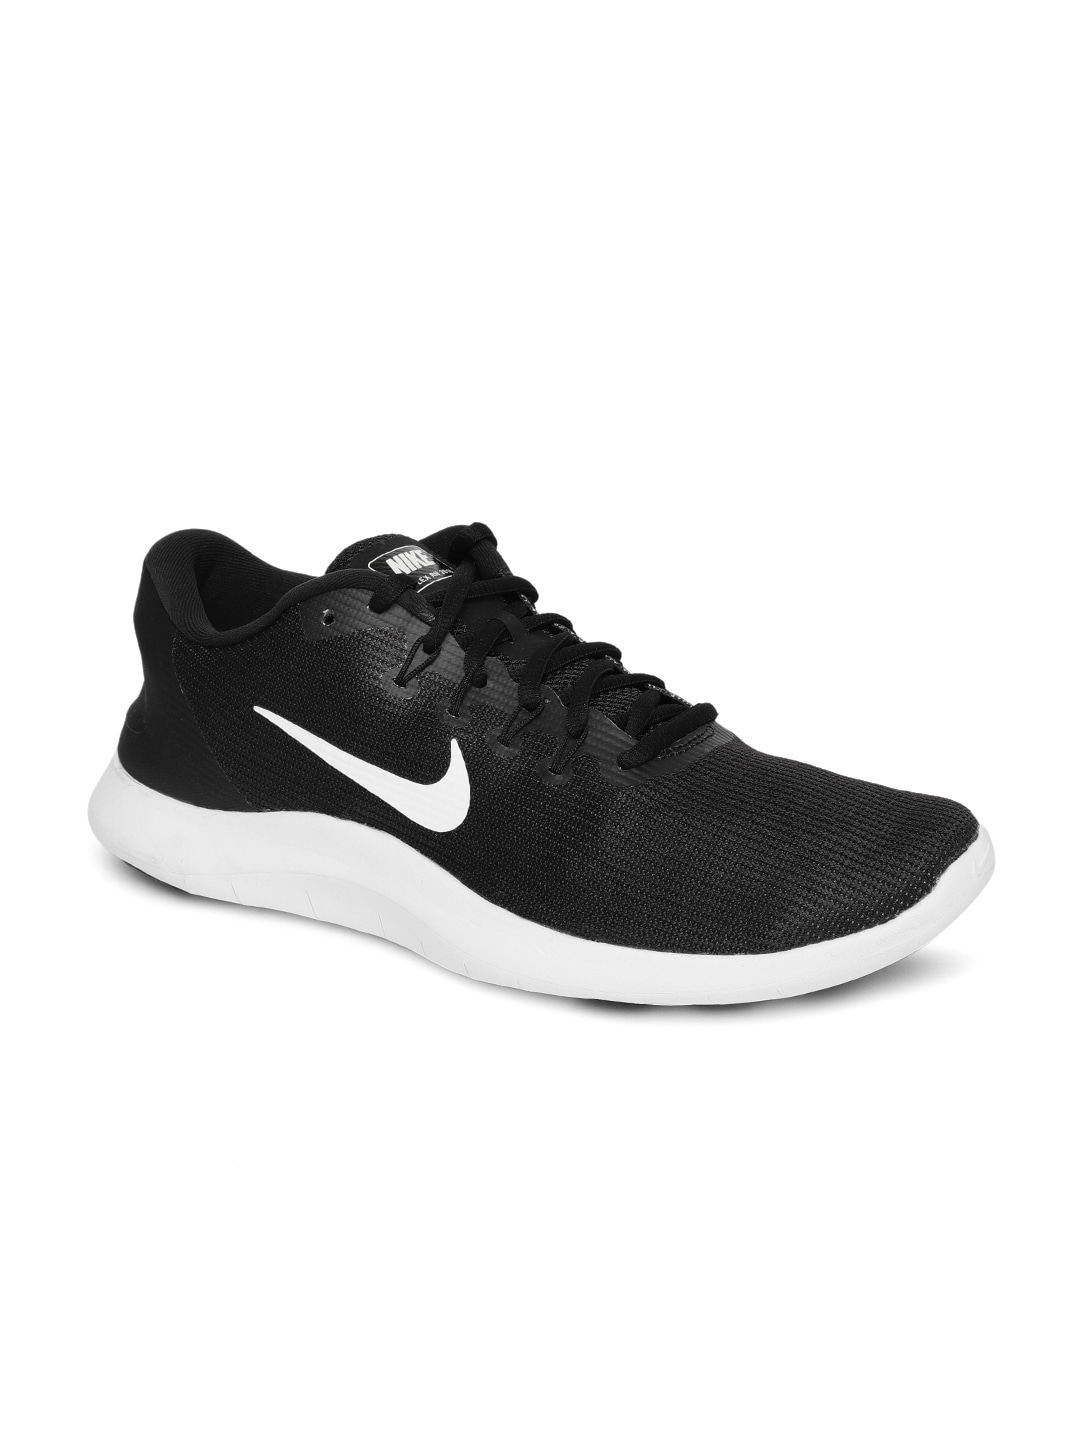 7fb91a0ed1c9 Nike Sport Shoe - Buy Nike Sport Shoes At Best Price Online